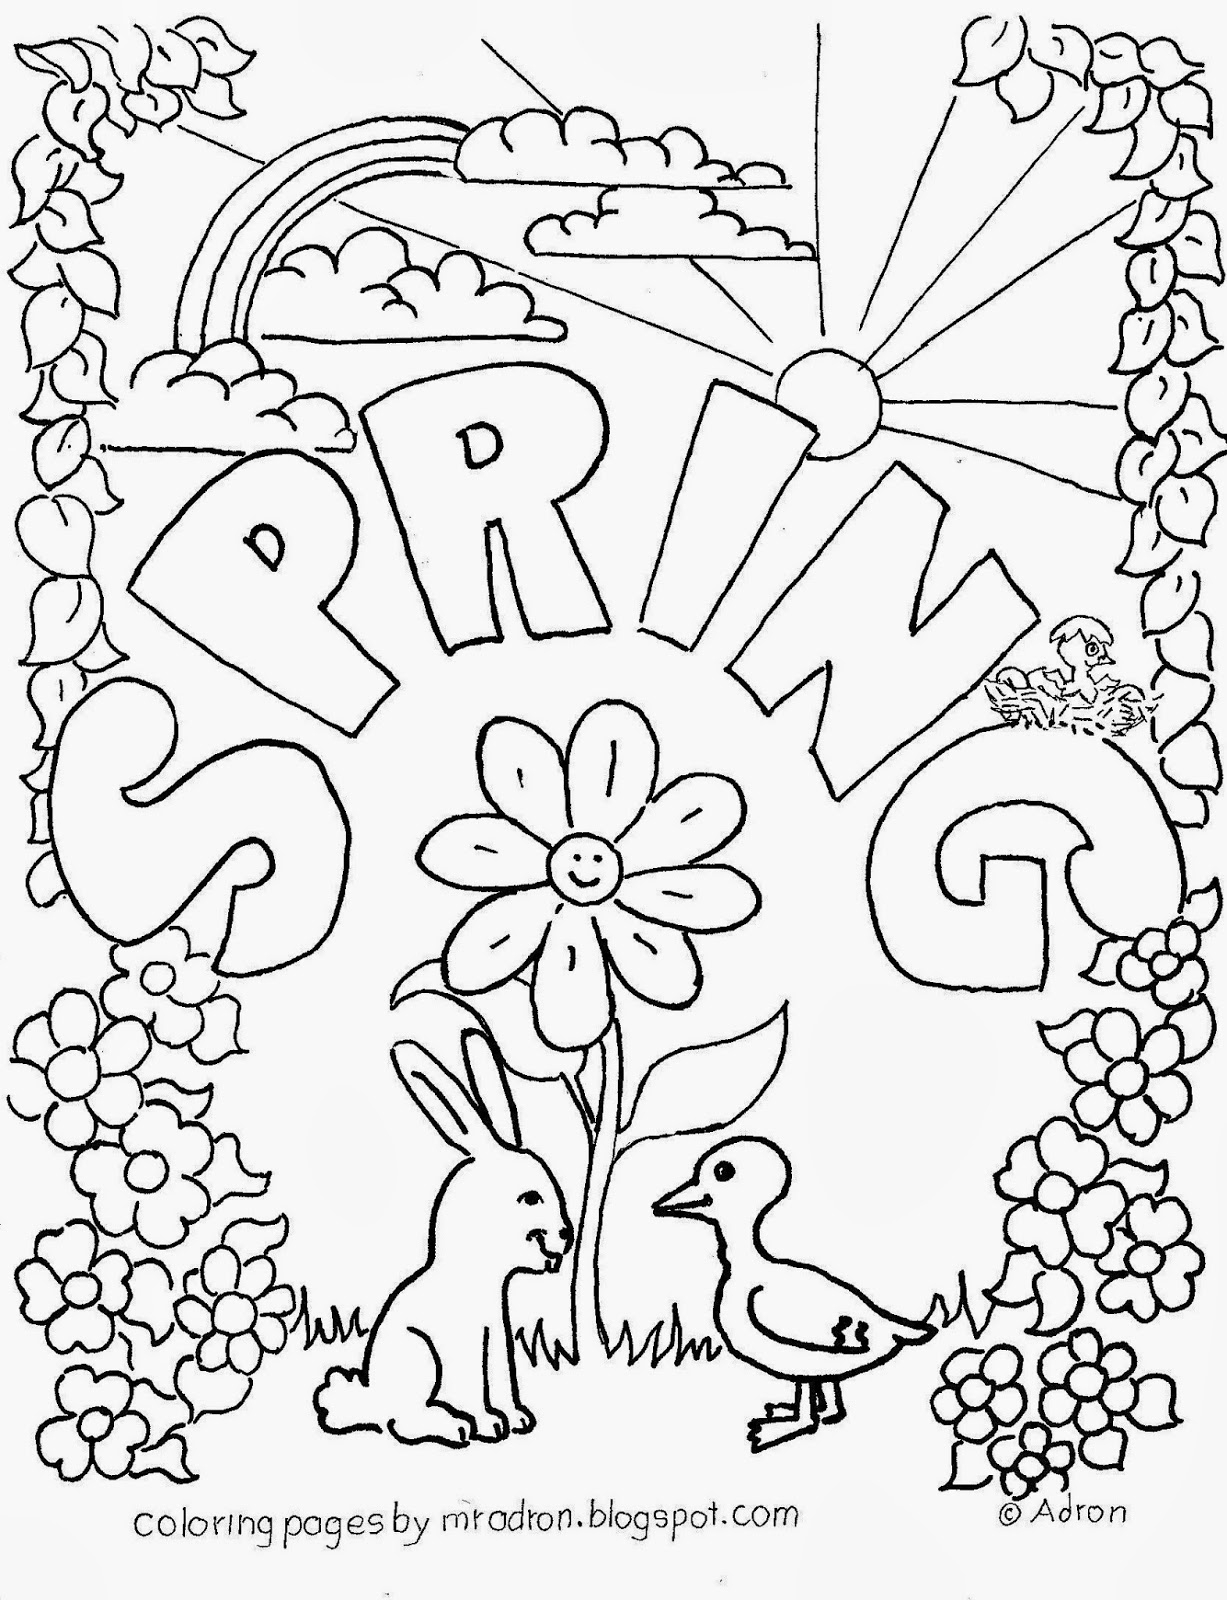 free printable spring coloring pages - spring free coloring page for kids